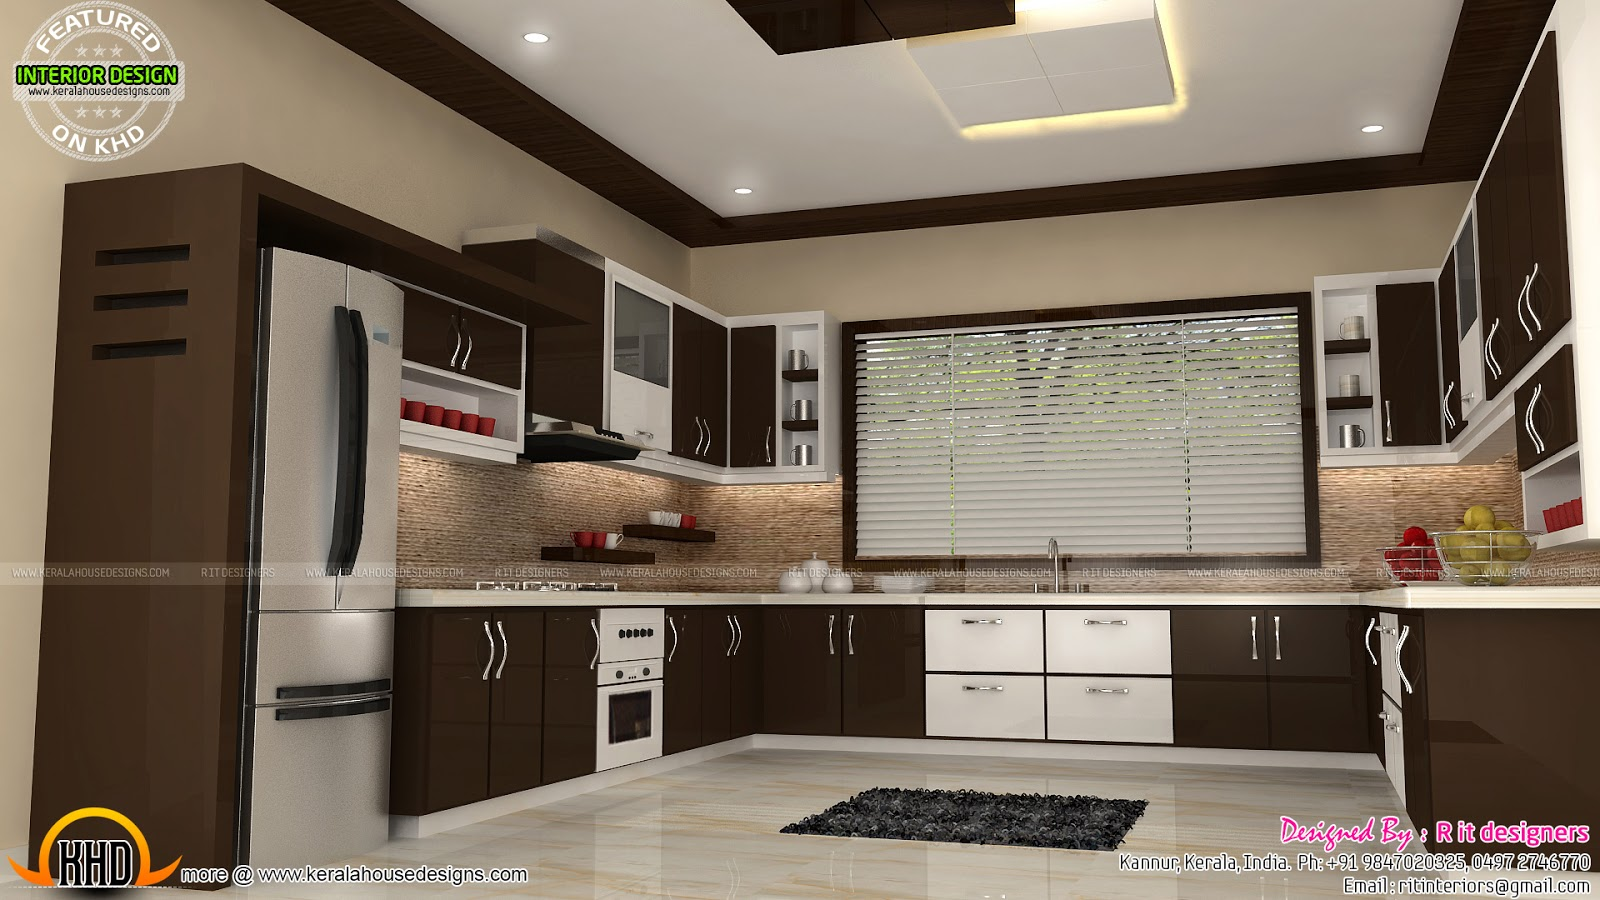 Kerala home design and floor plans interiors of bedrooms Low cost interior design ideas india